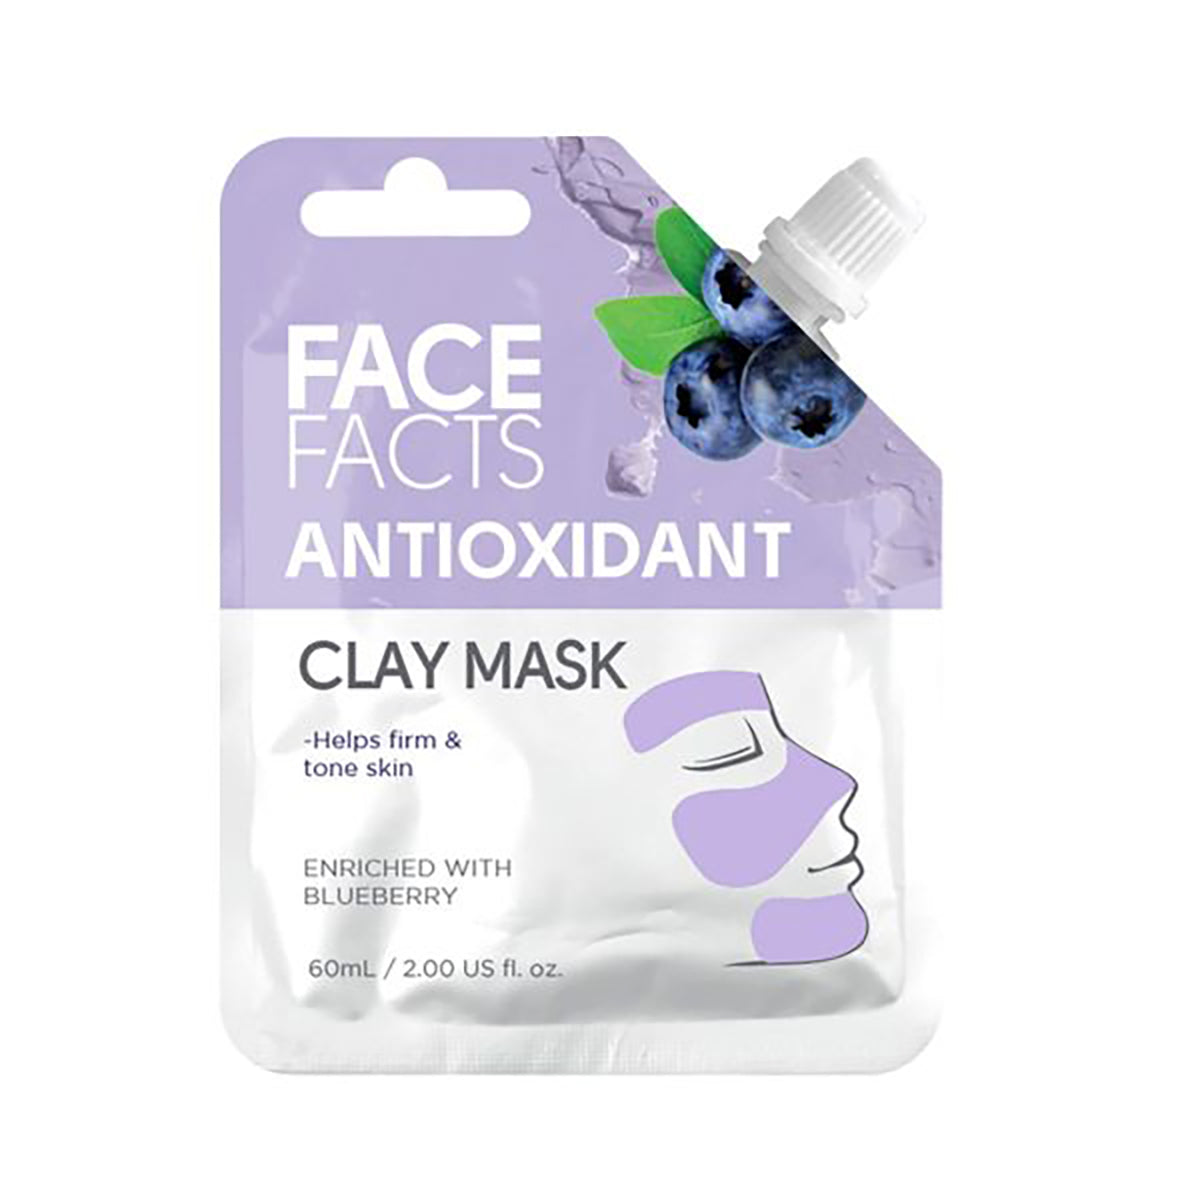 Face Facts Antioxidant Clay Mud Mask